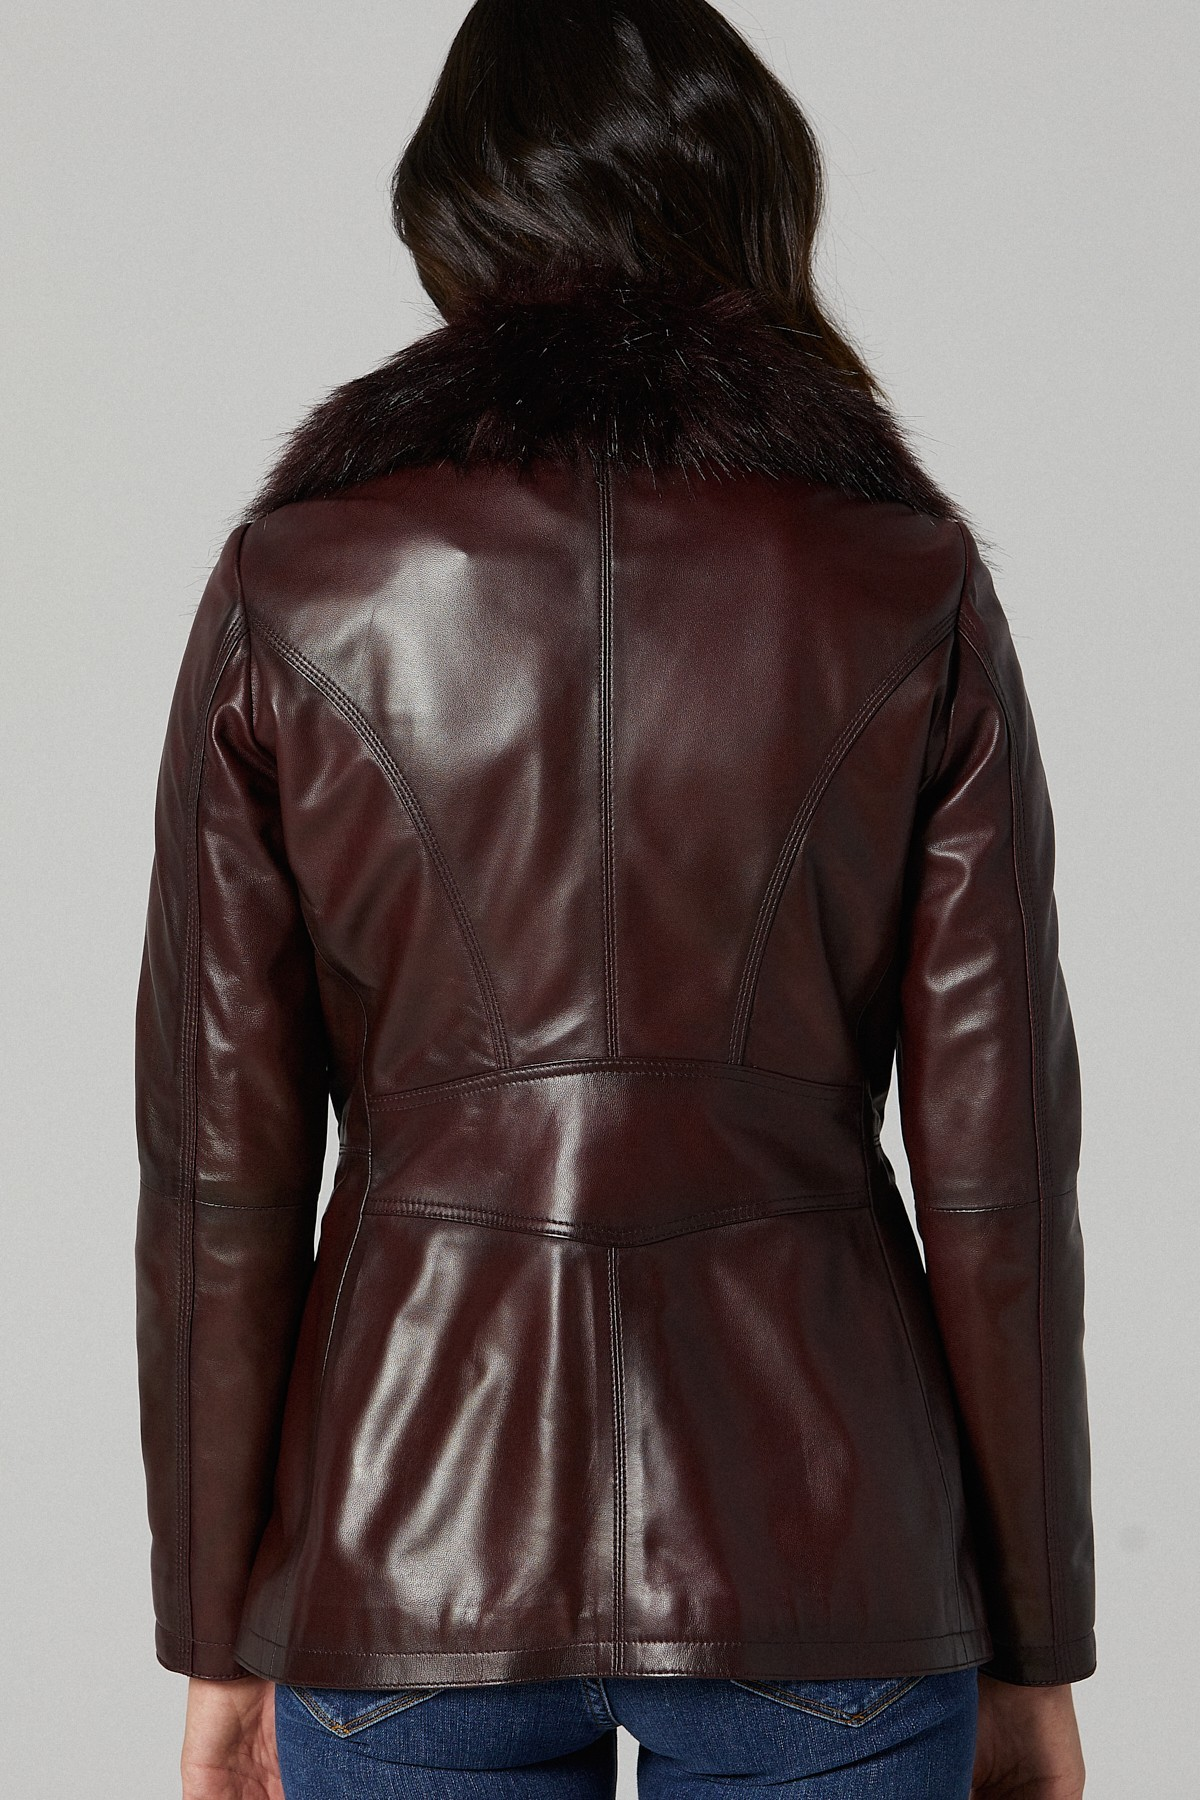 Gap Womens Leather Jackets